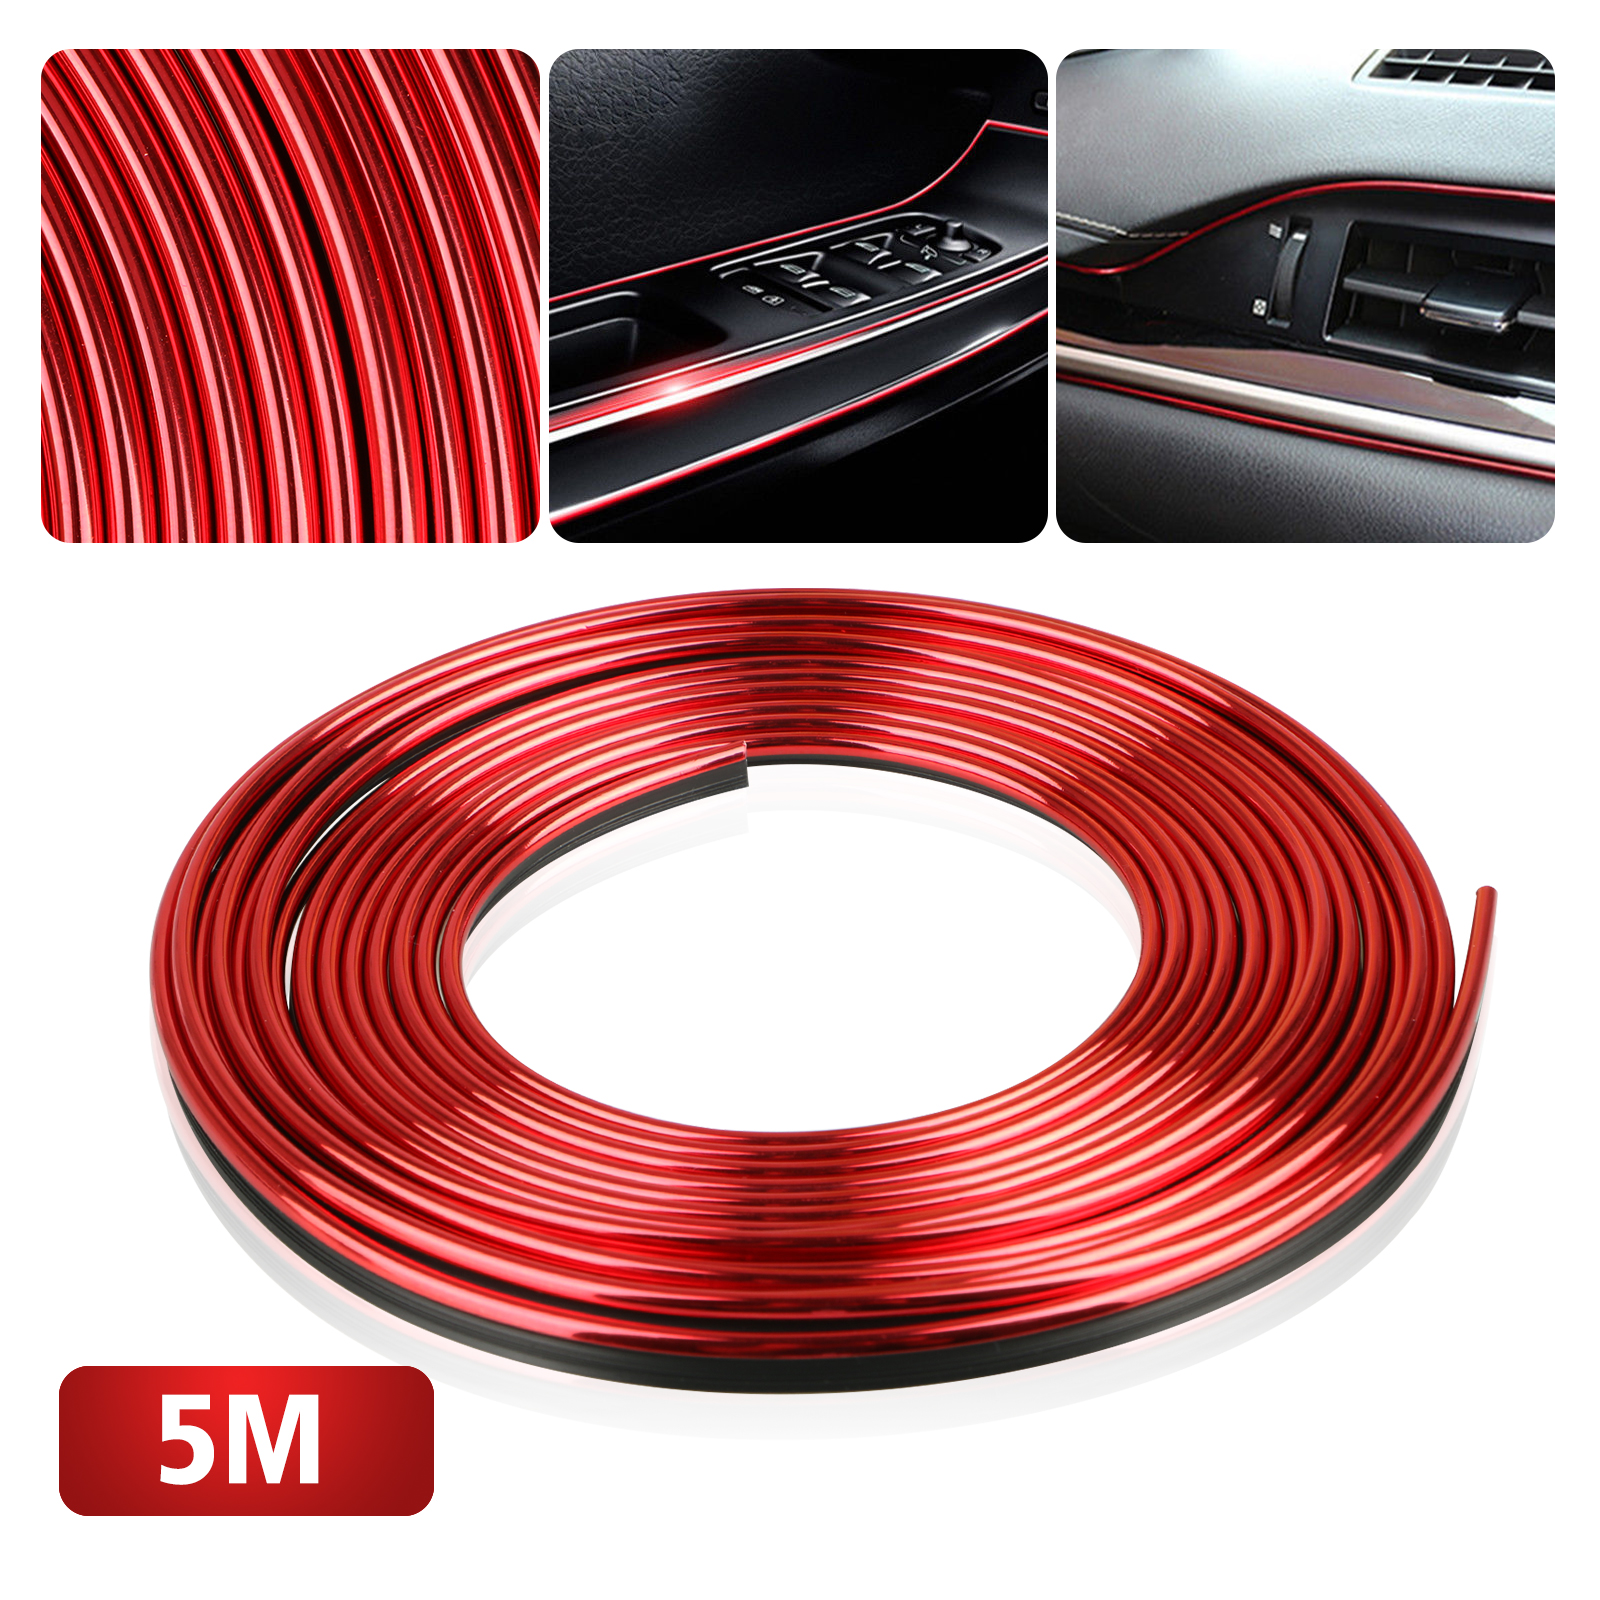 Car Interior Trim, EEEKit Red 5M Car Door Gap Edge Interior Exterior Decoration Strip Flexible Insert Moulding Line for Car Automobile, Tool Included